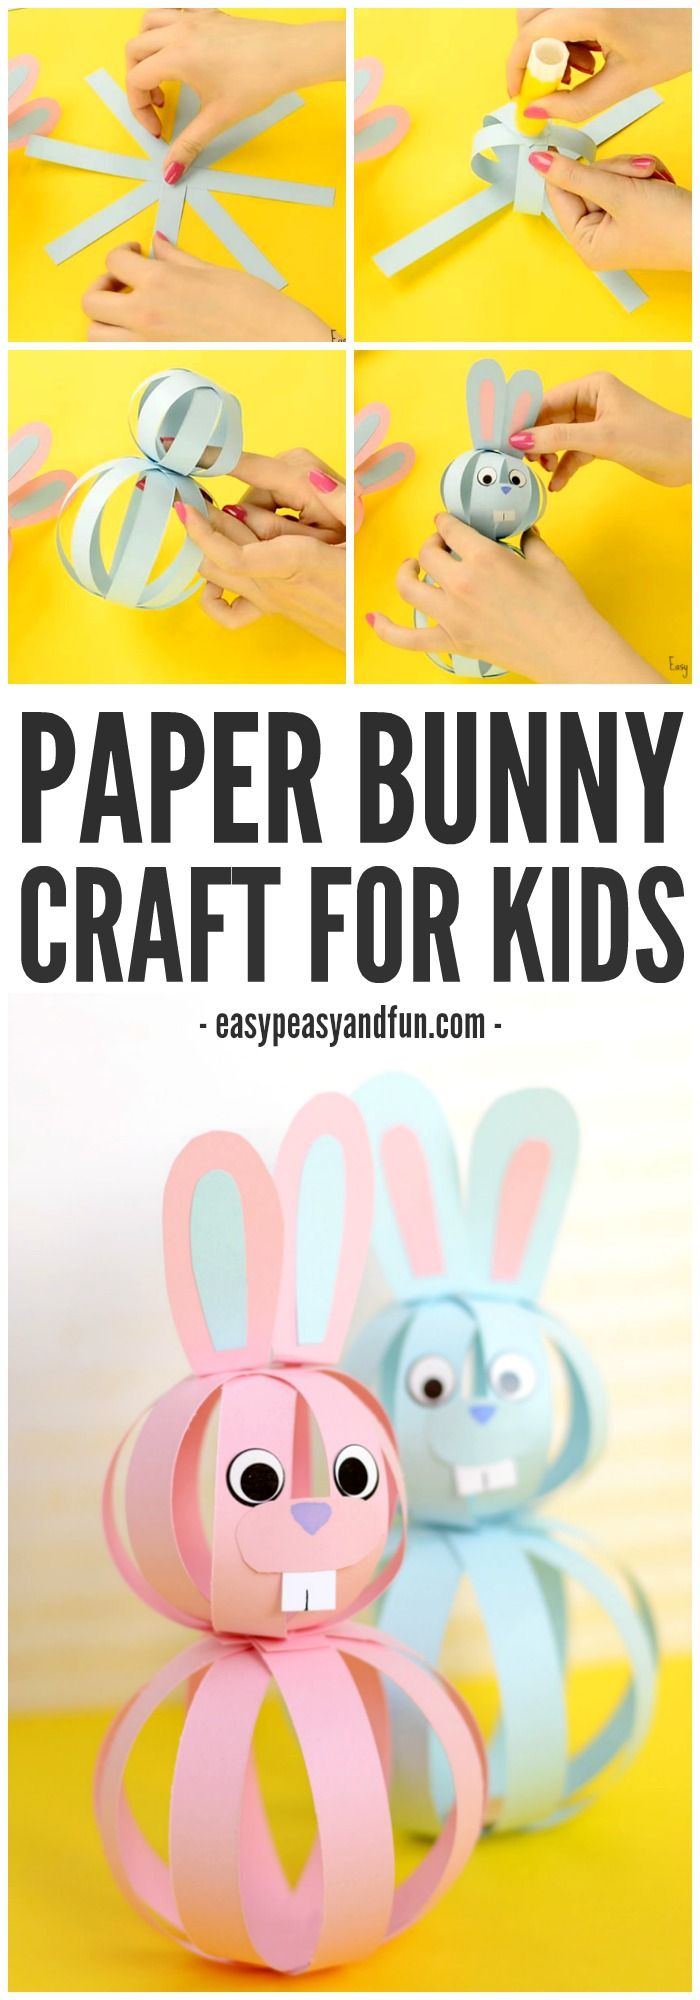 Easy Paper Bunny Craft for kids! Such cute bunnies for spring!